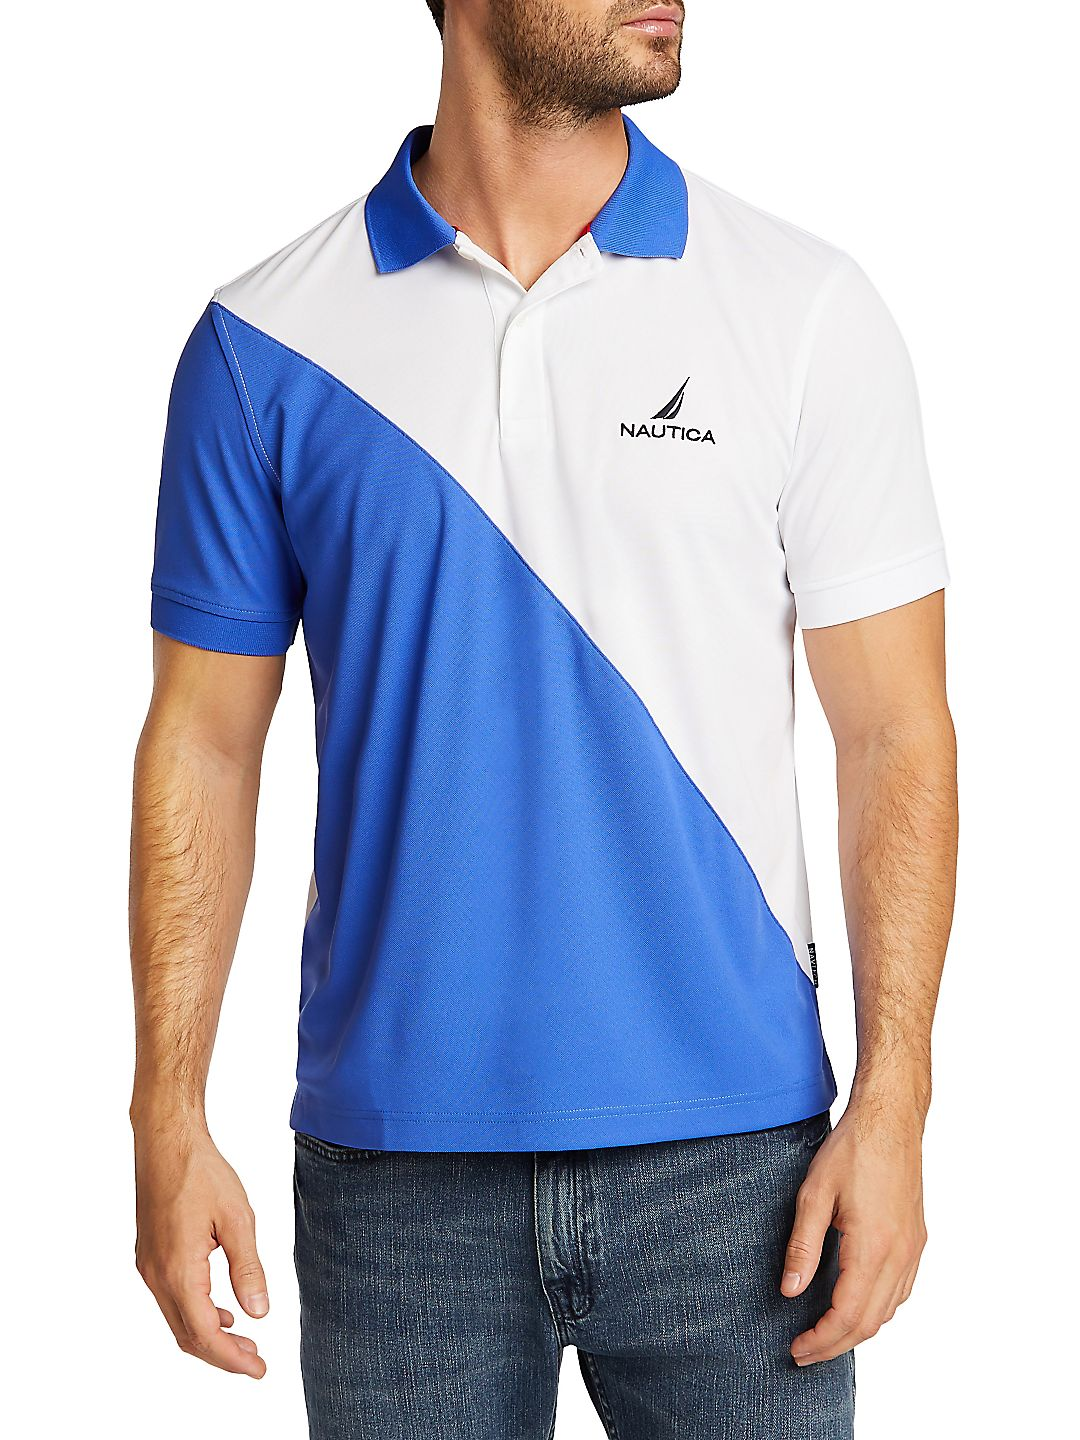 Navtech Classic-Fit Colorblock Polo